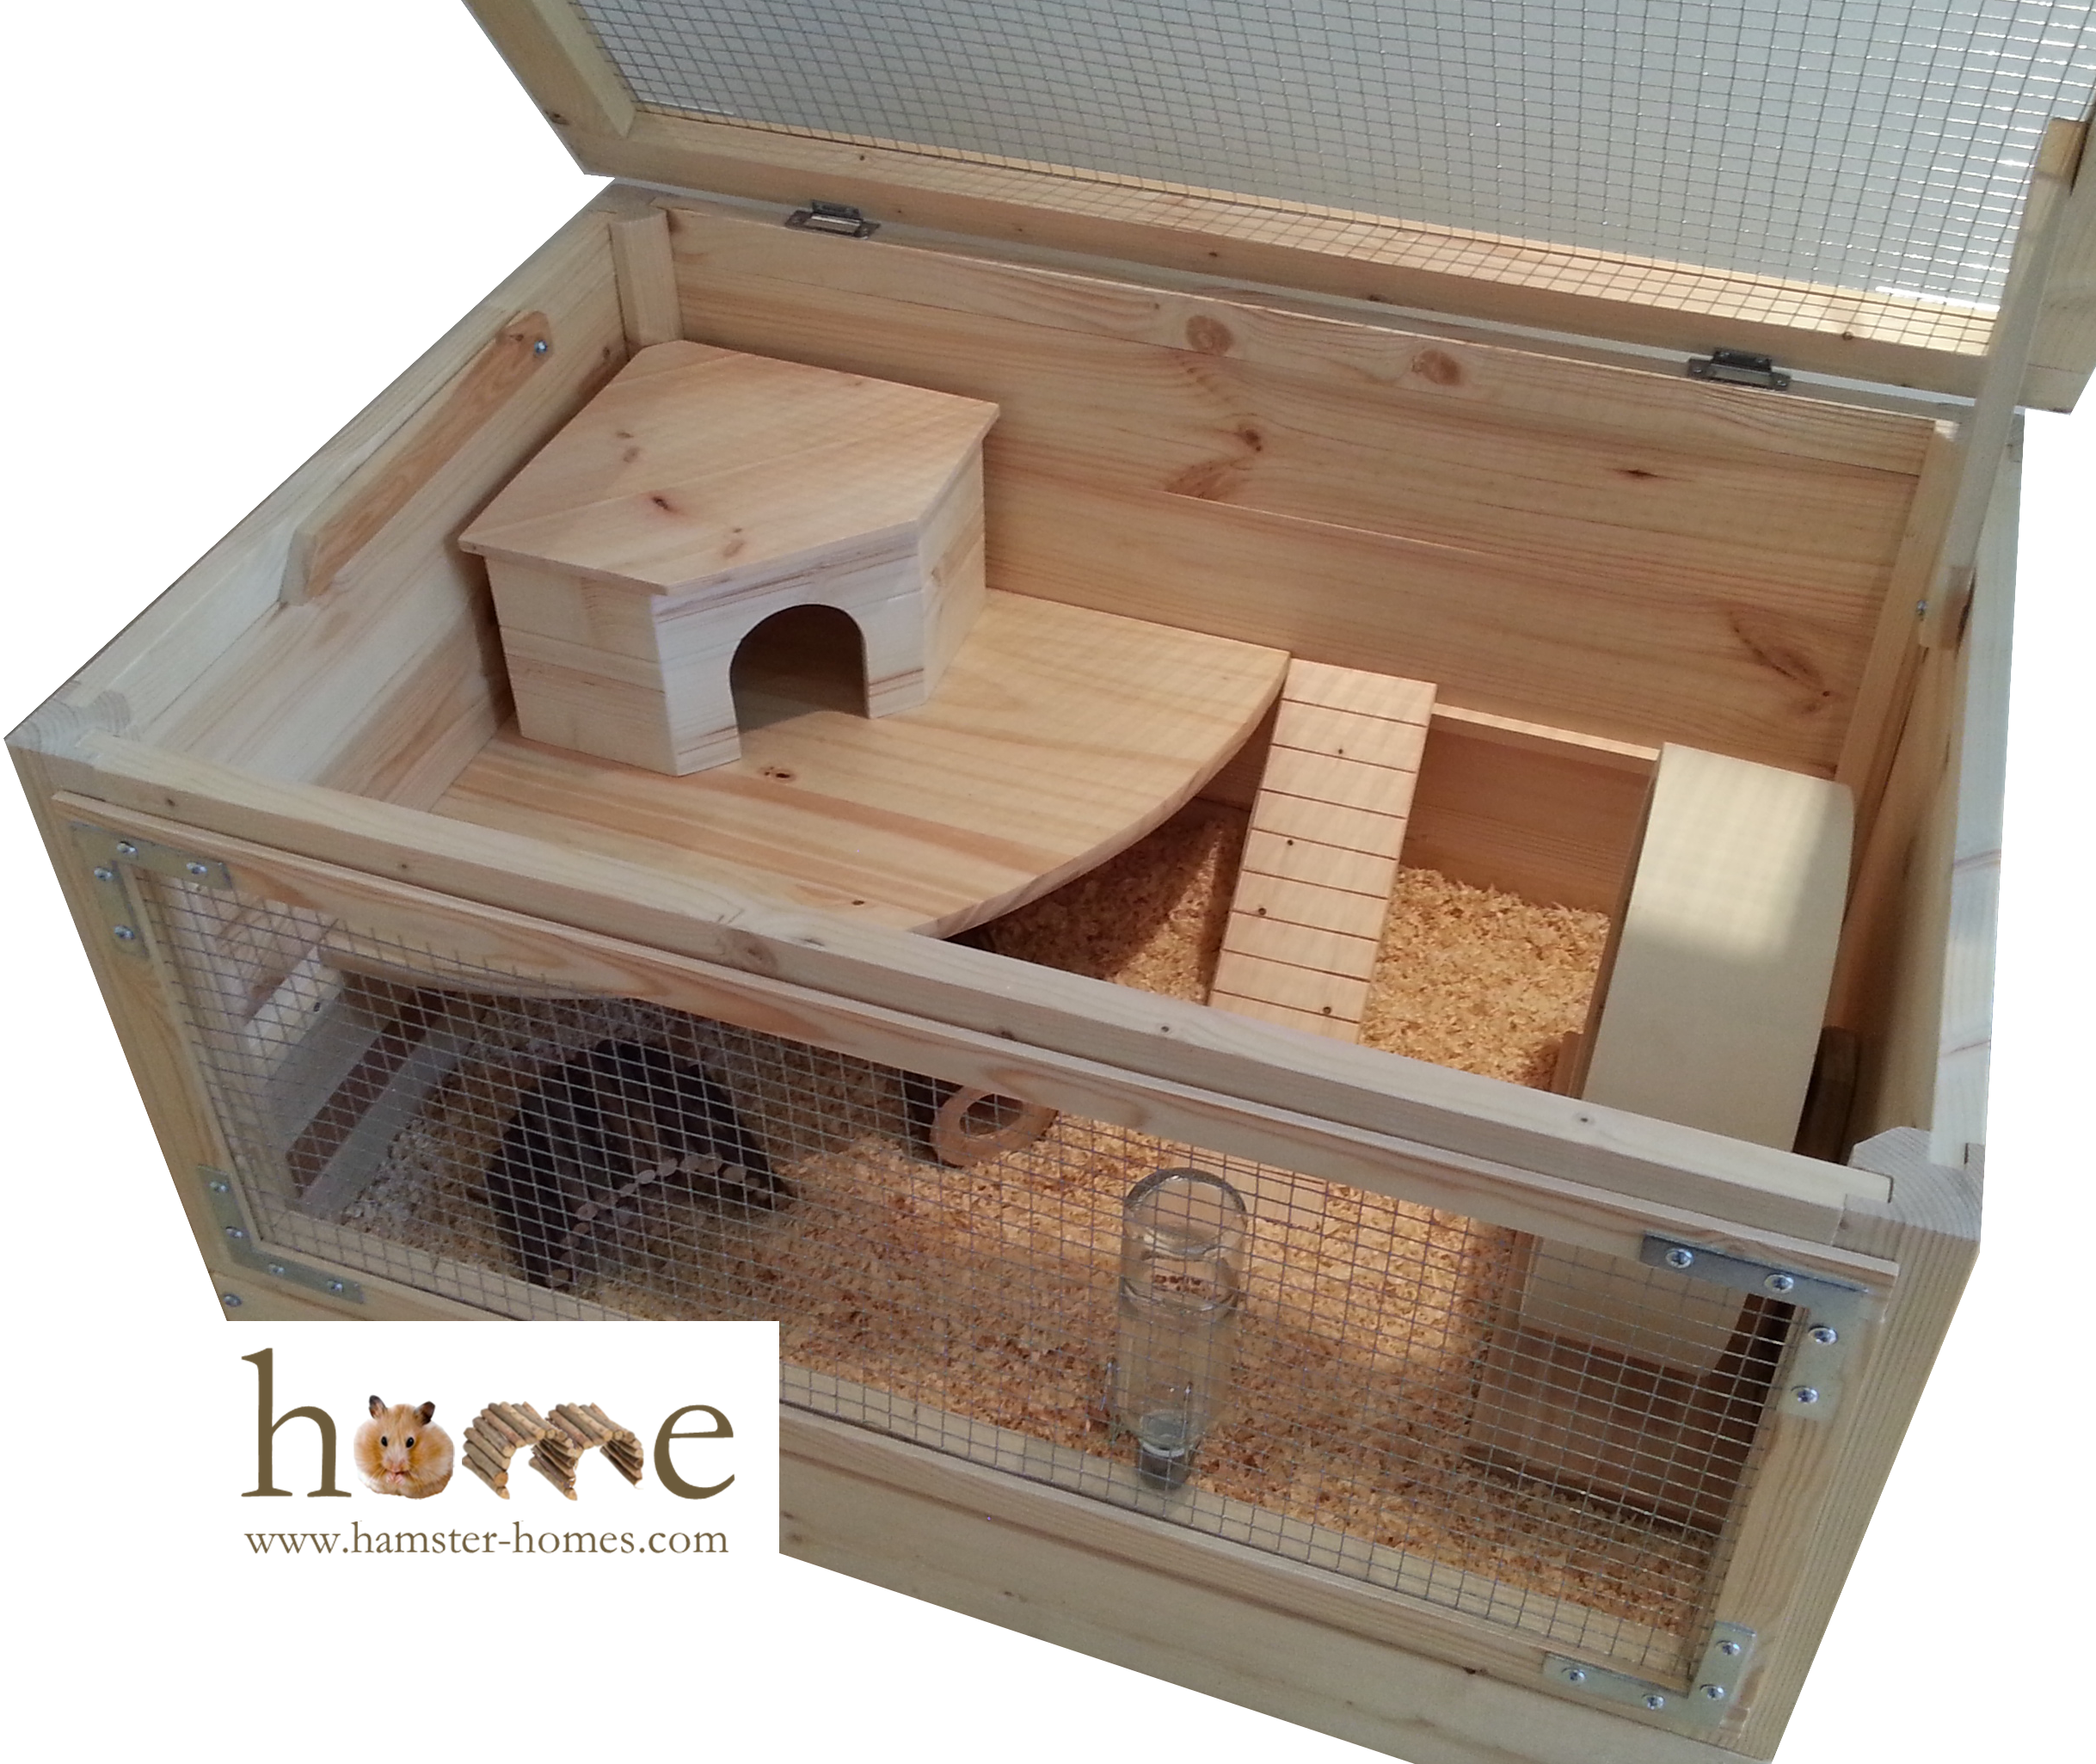 Large 80cm x 50cm natural wooden hamster cage for Guinea pig cage made from bookshelf